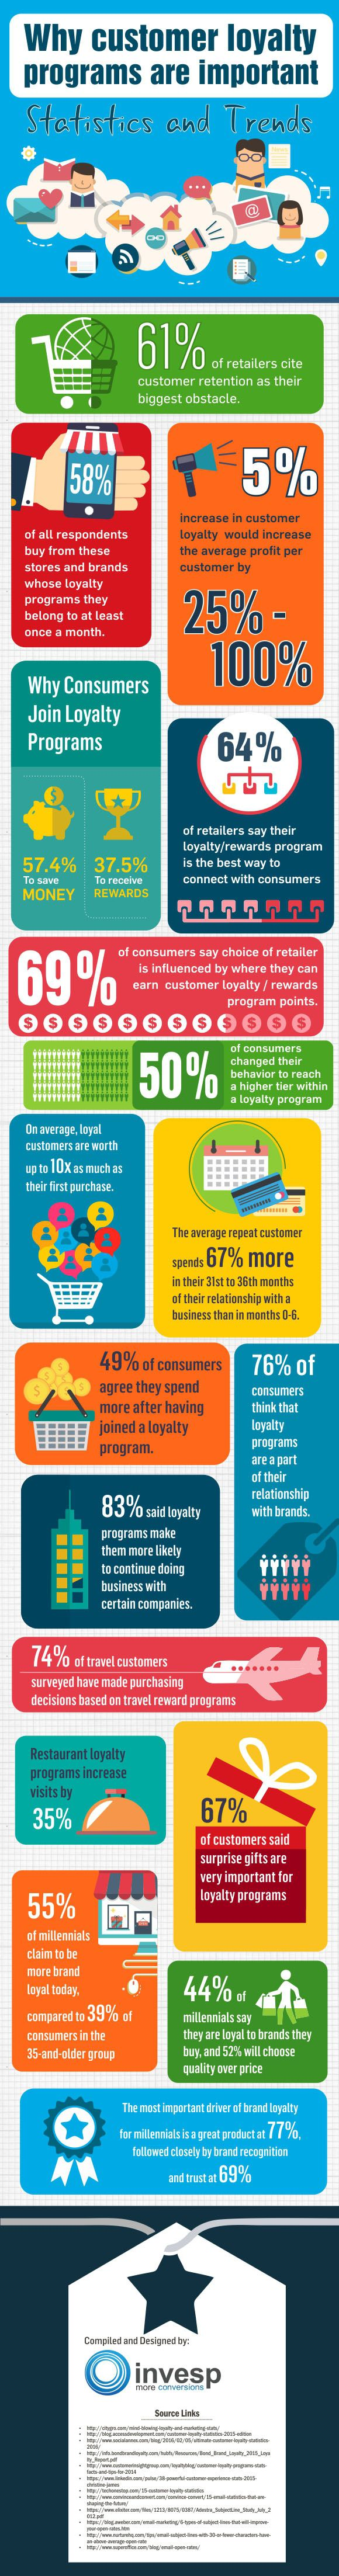 Infographic by Invesp on the importance of customer loyalty programs